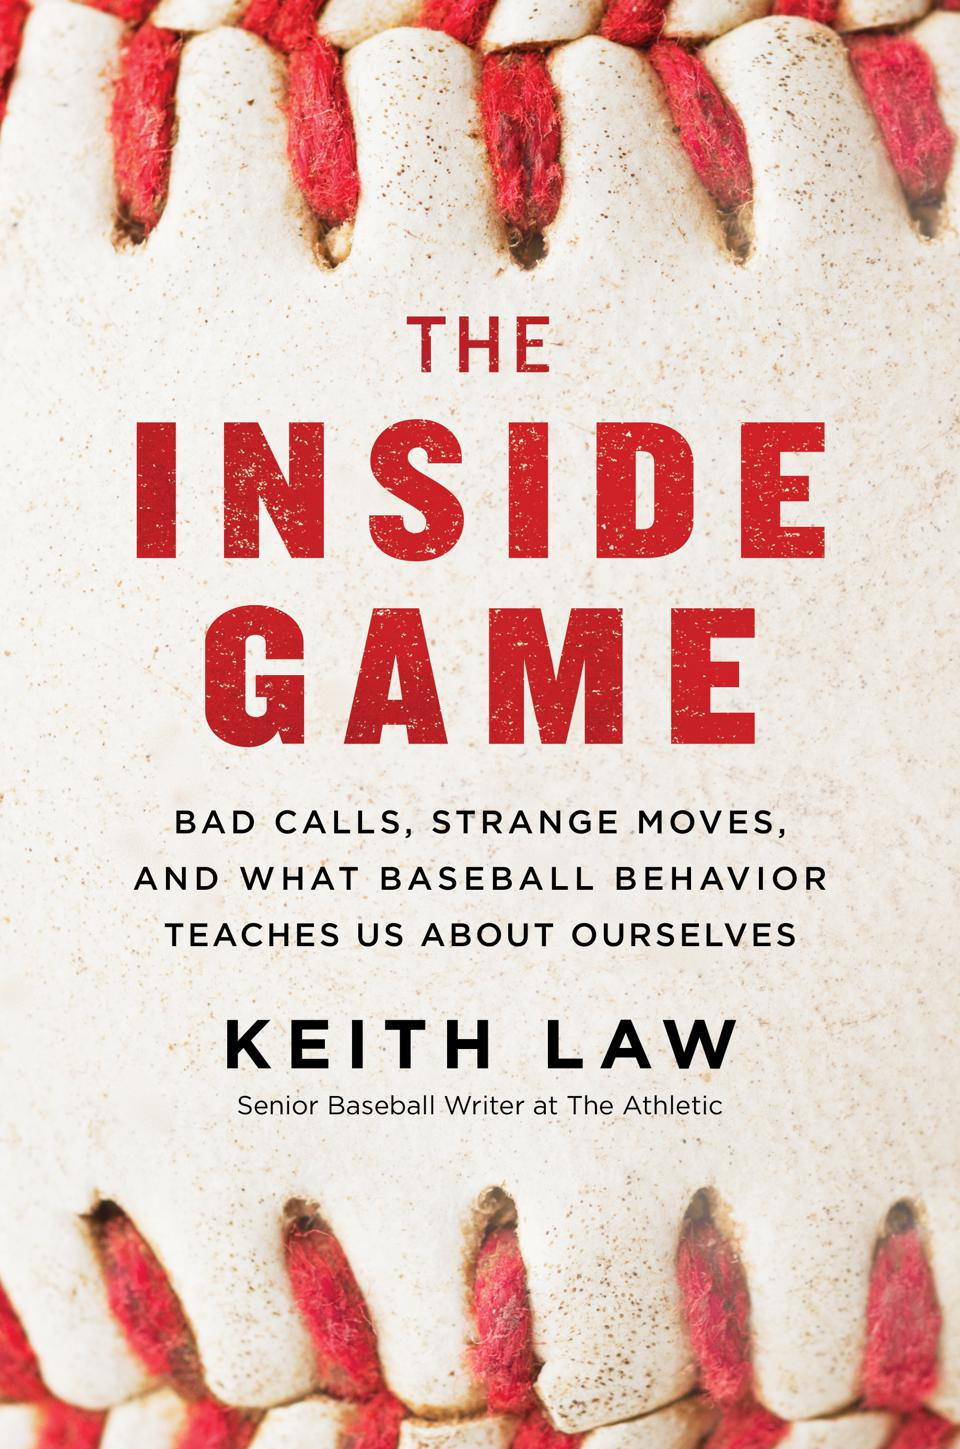 ″The Inside Game: Bad Calls, Strange Moves, and What Baseball Behavior Teaches Us About Ourselves″ book